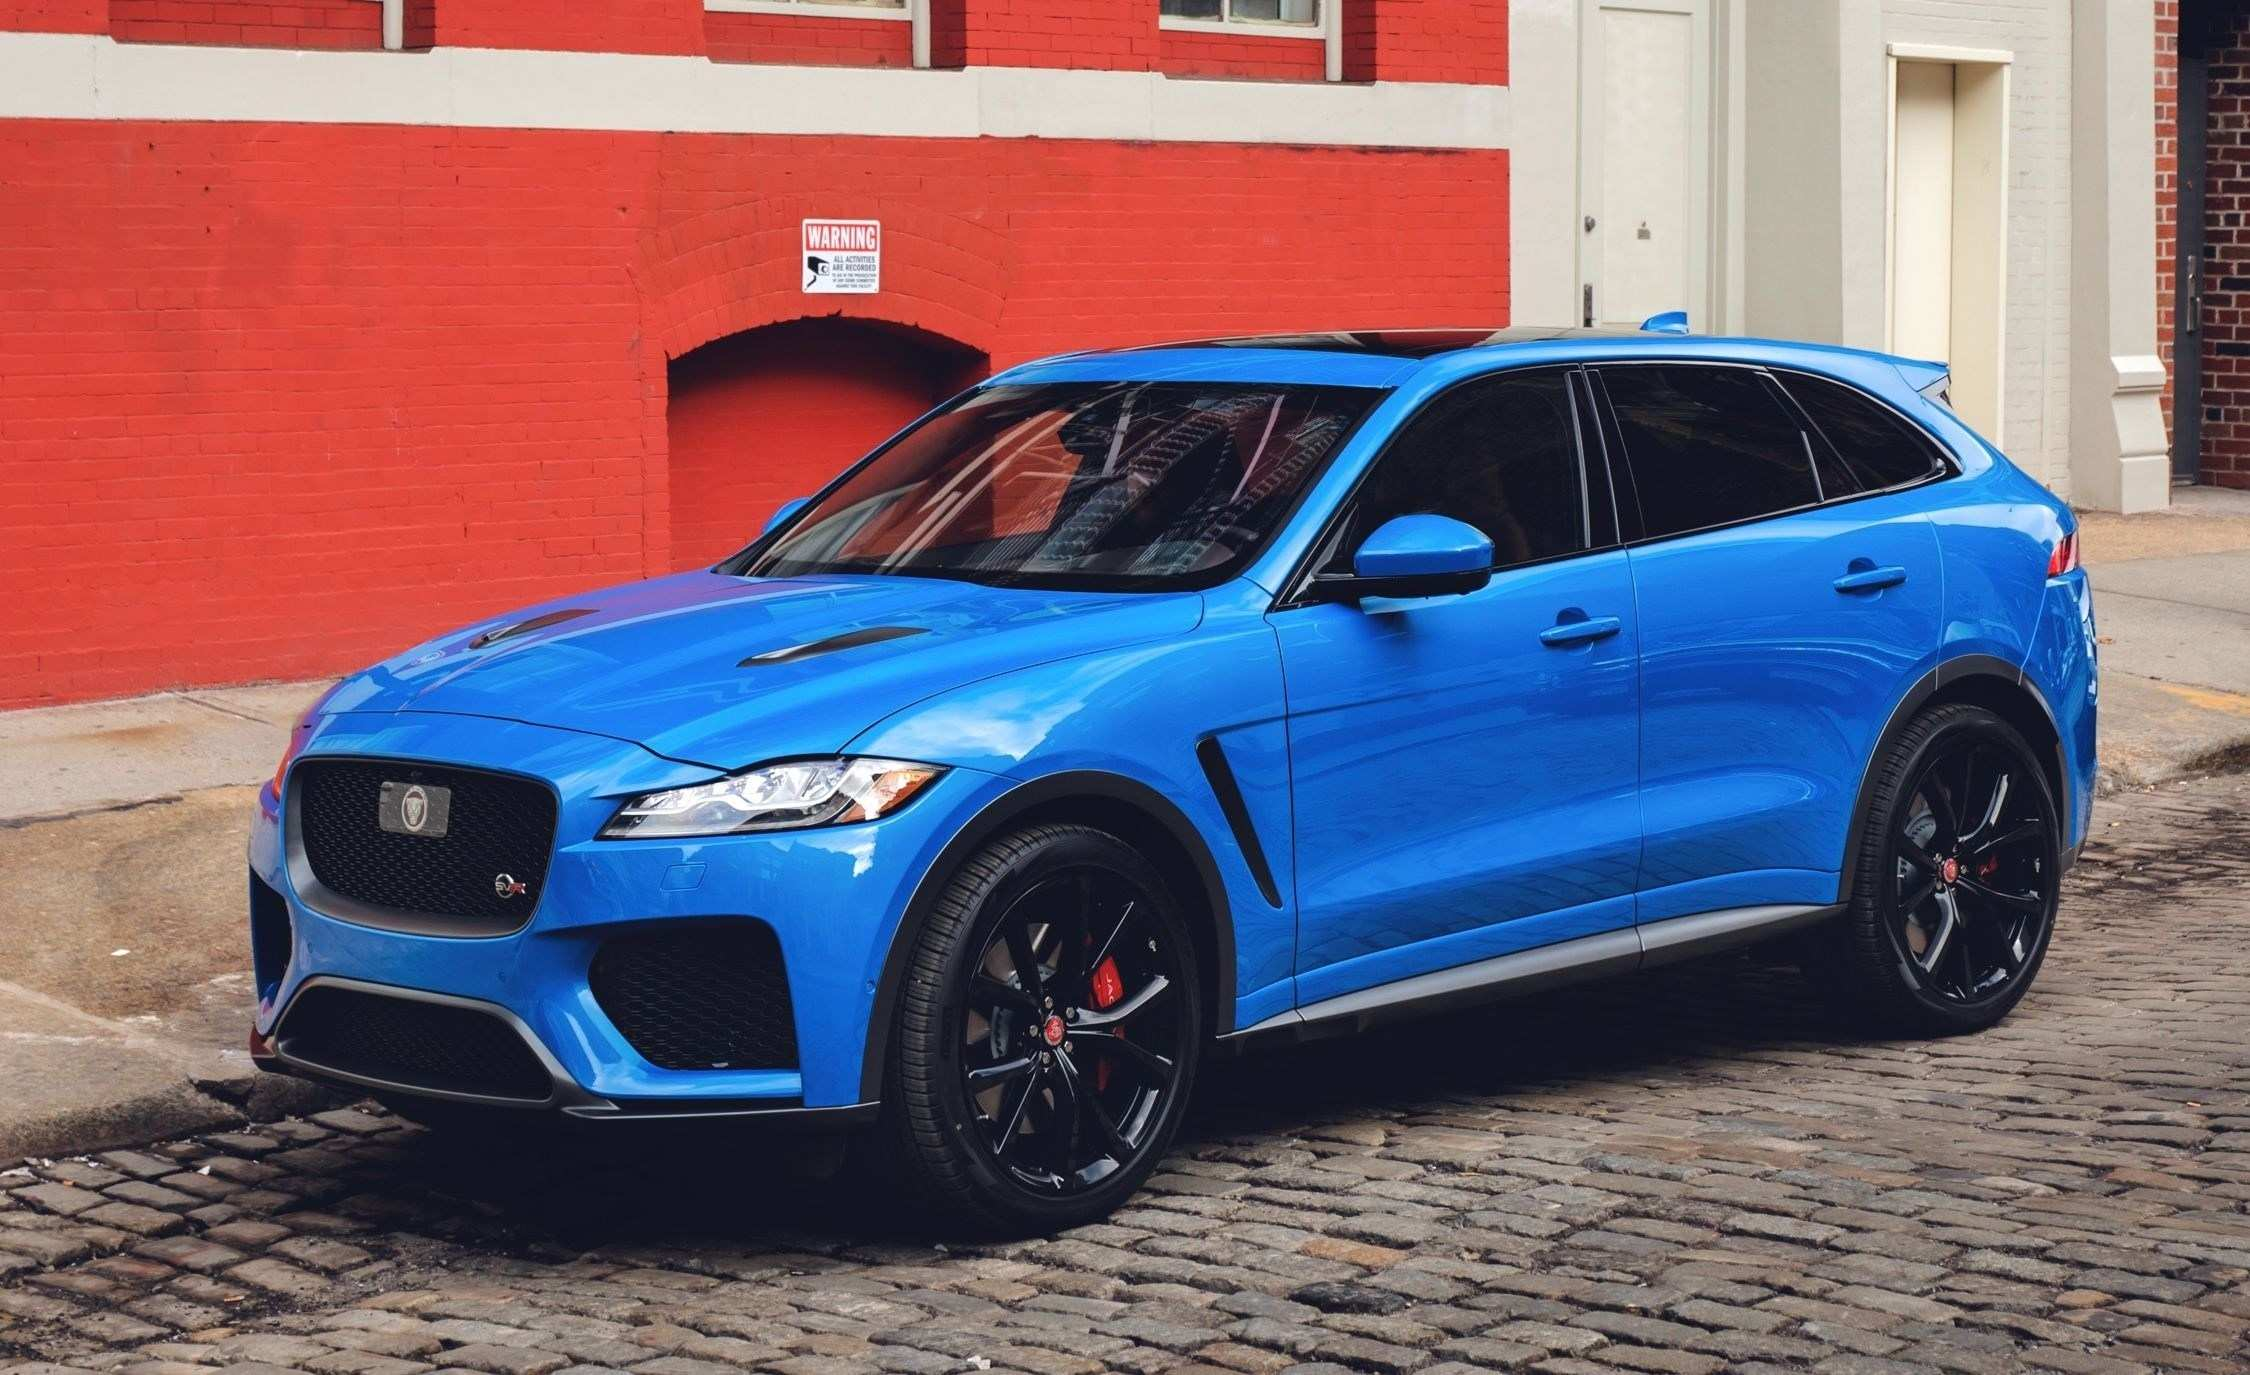 23 All New Jaguar F Pace 2020 New Concept Interior by Jaguar F Pace 2020 New Concept